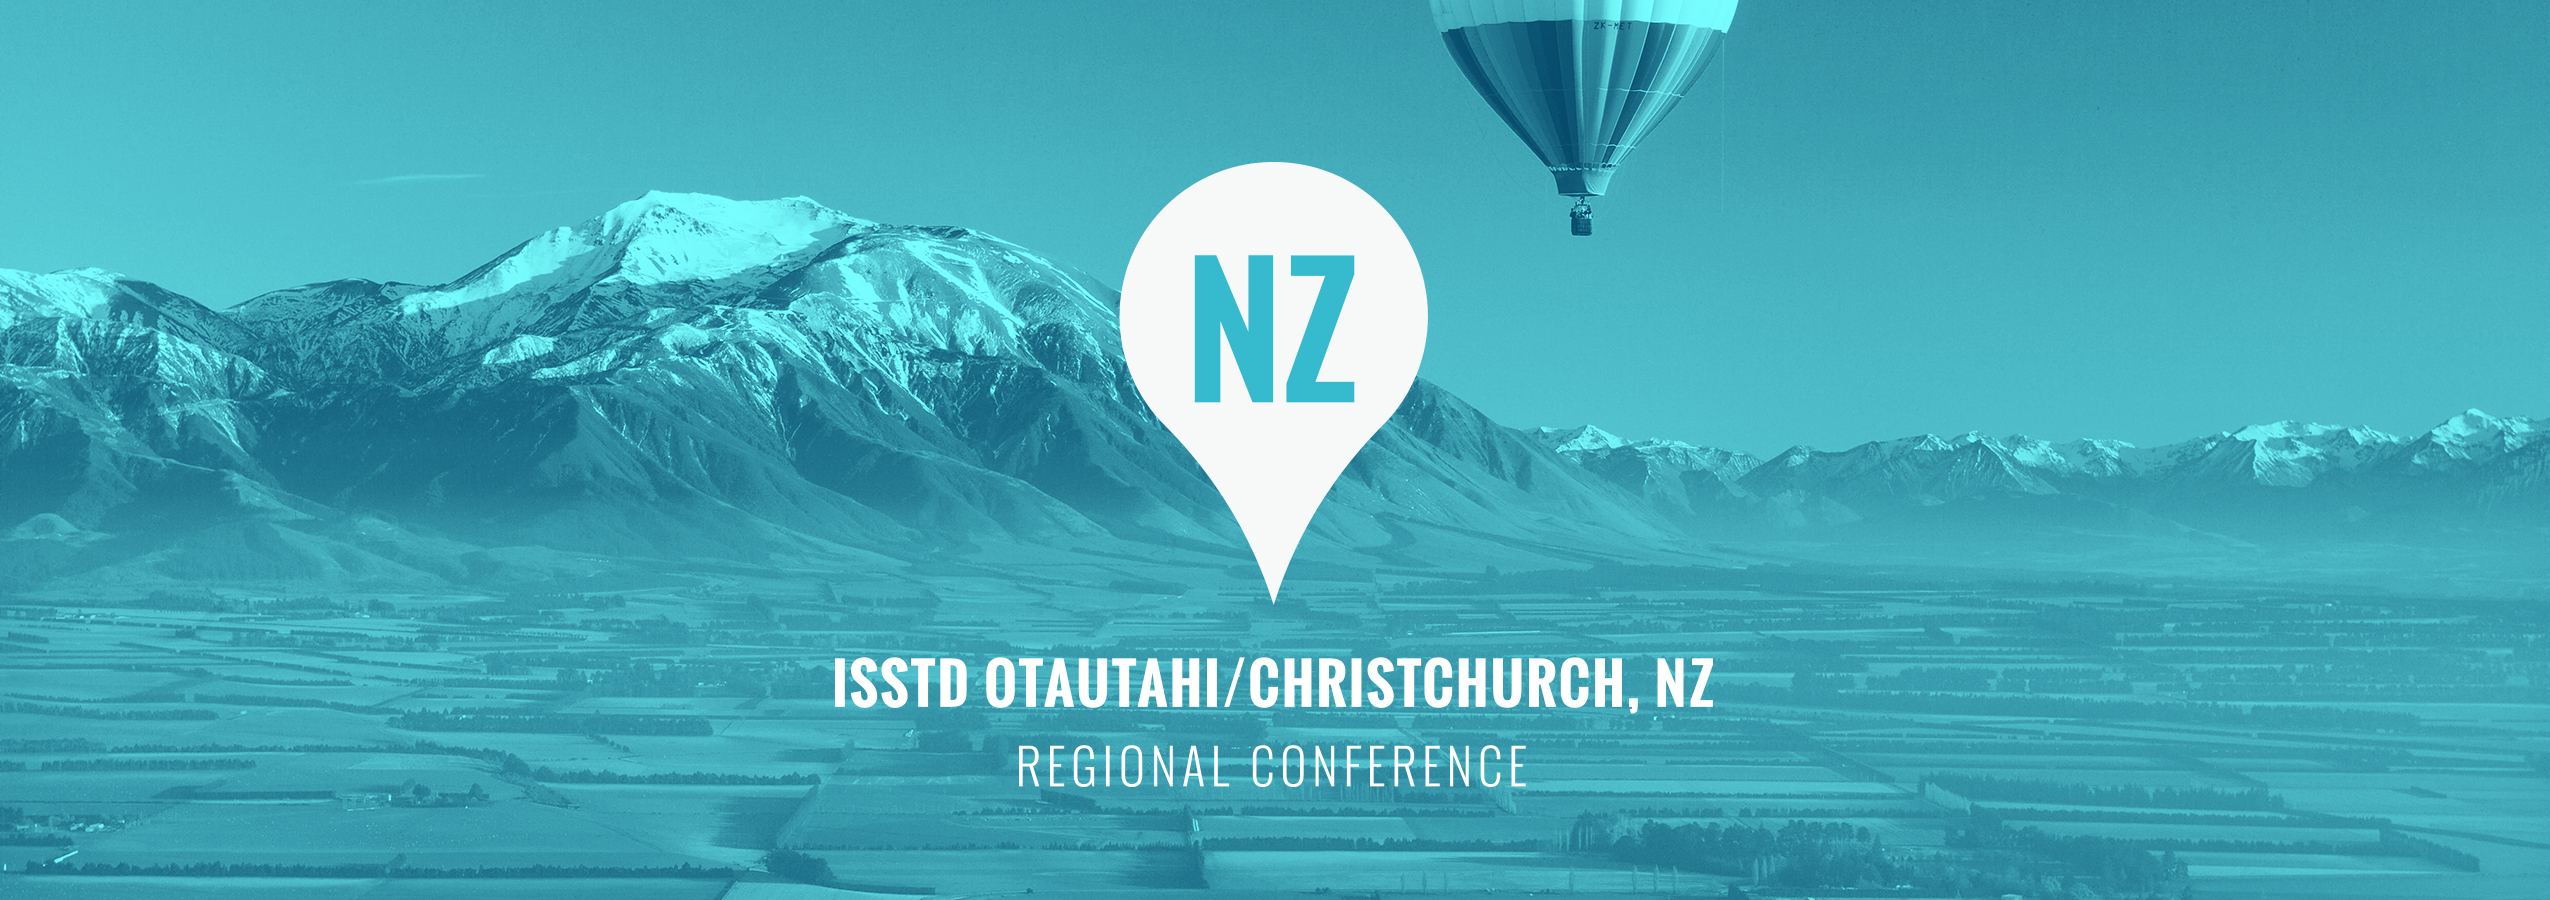 2019 Otautahi/Christchurch NZ Regional Conference - ISSTD